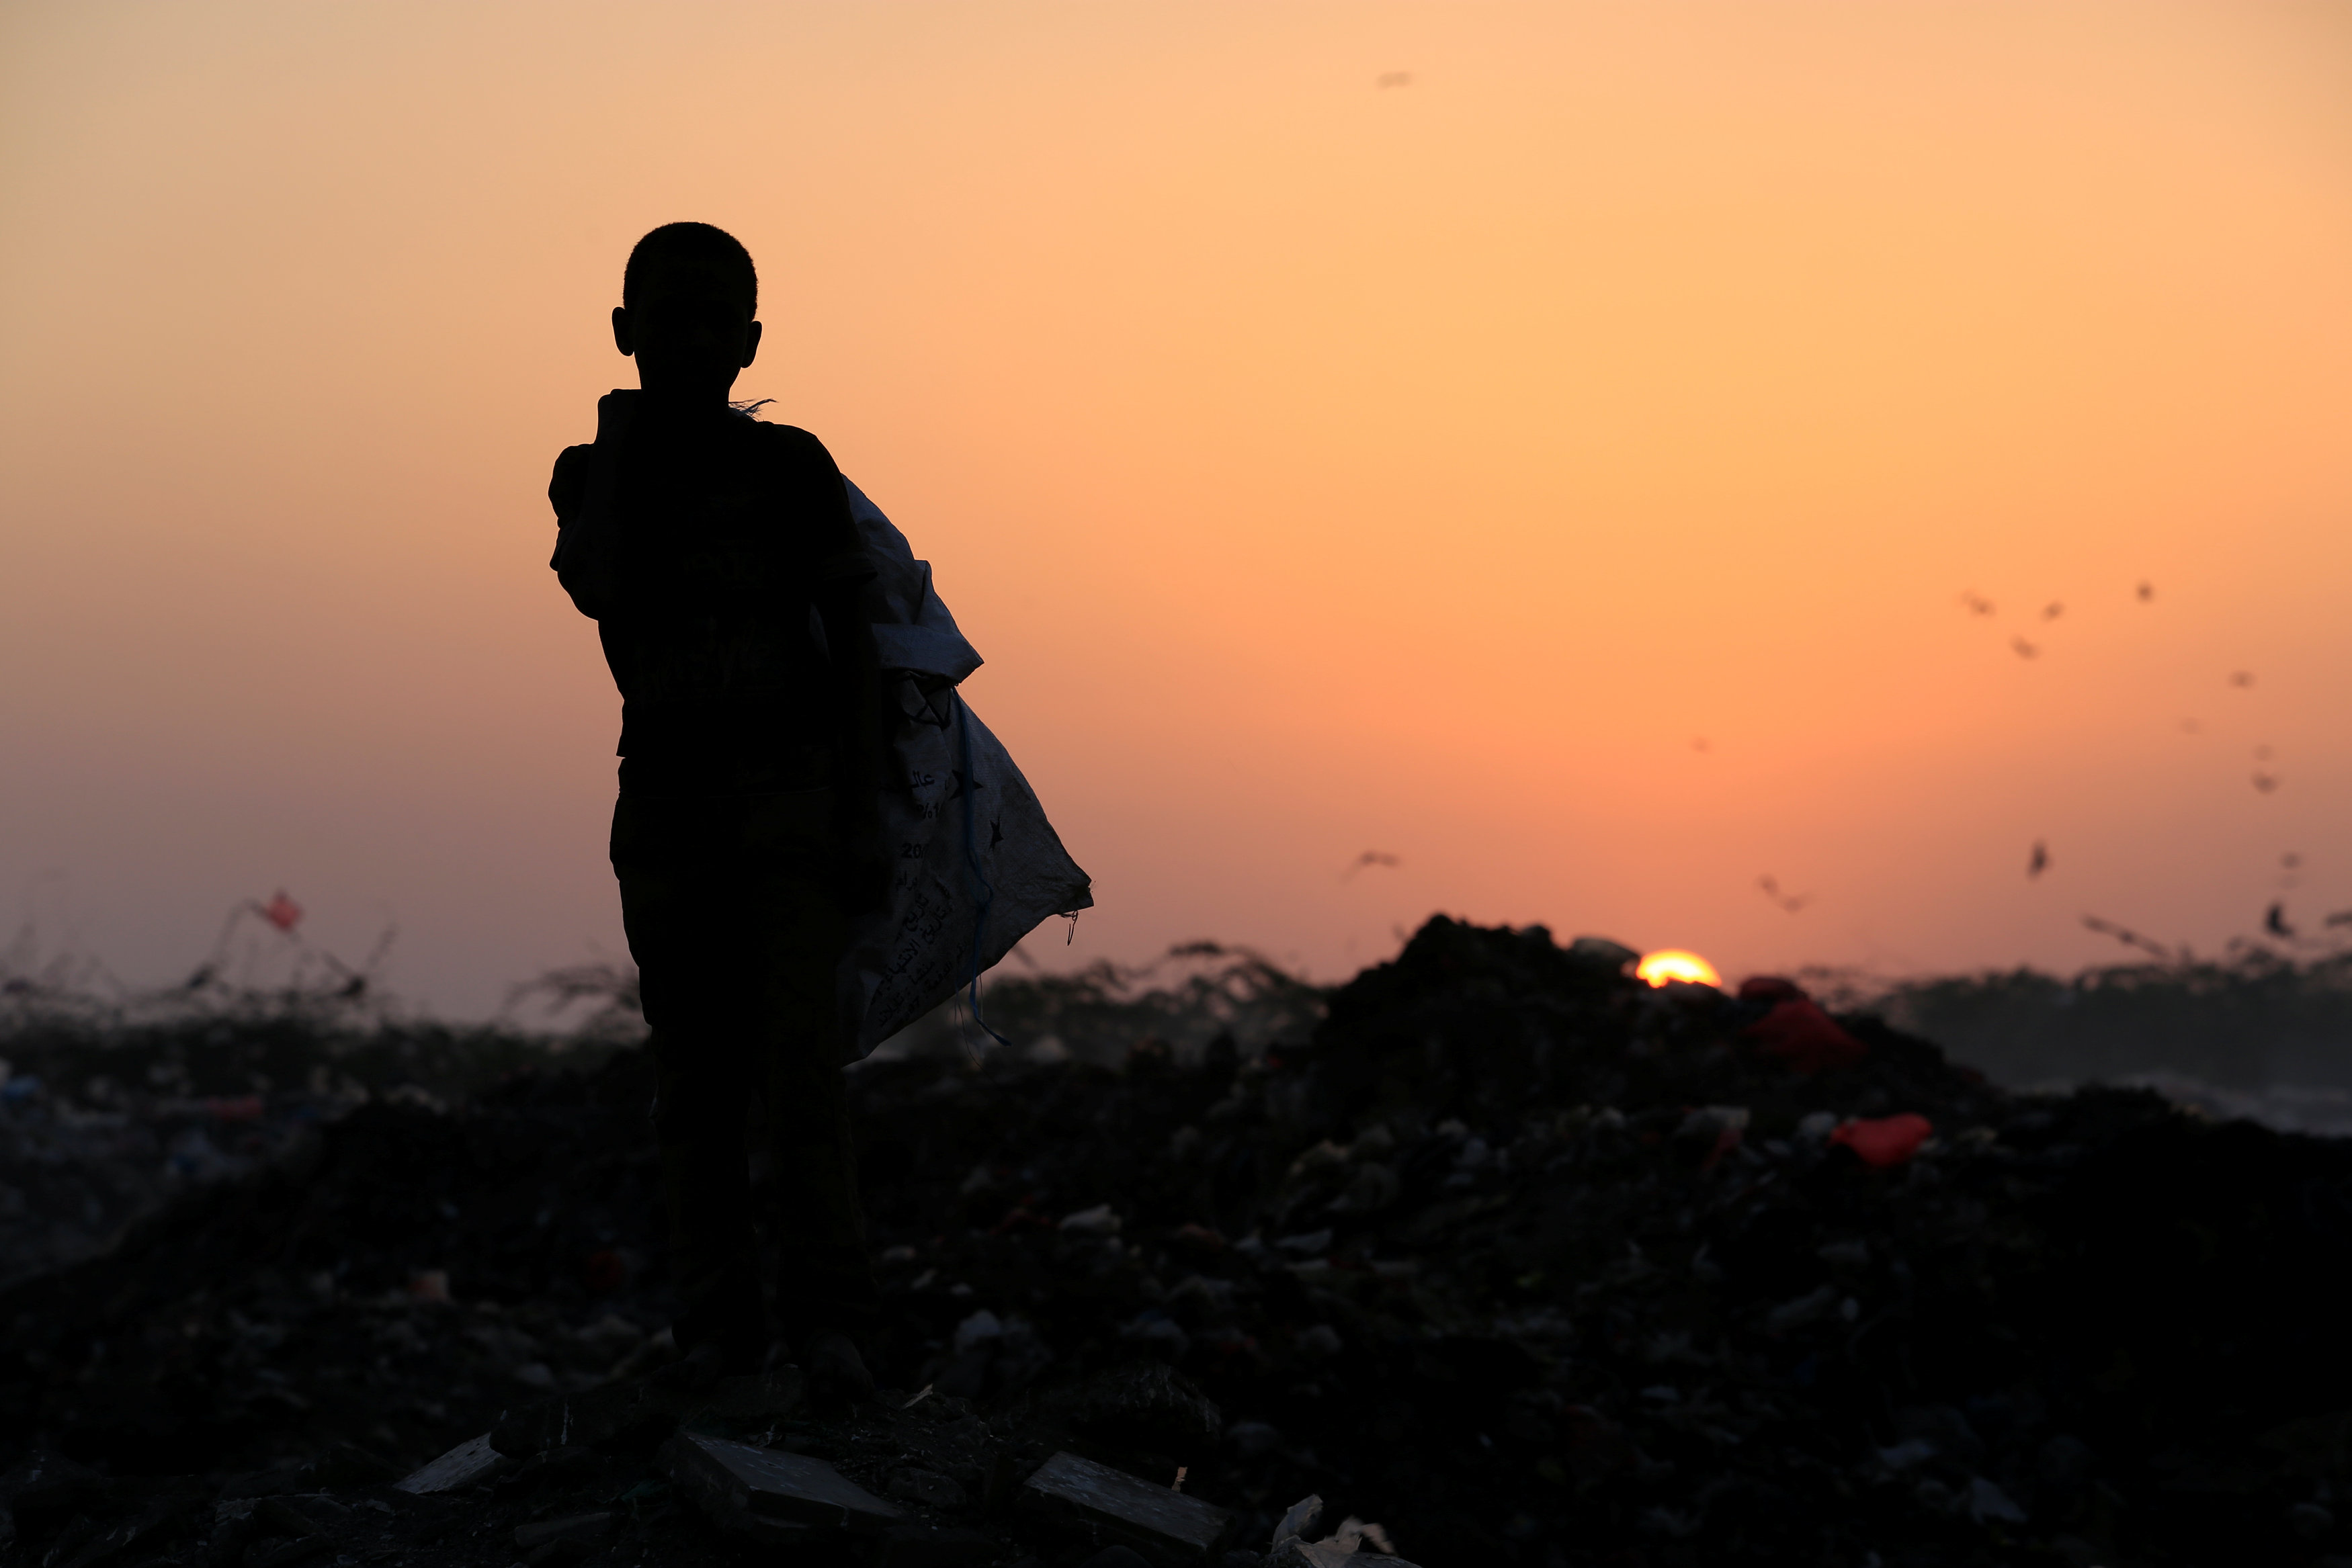 Ayoub Mohammed Ruzaiq, 11, stands in a garbage dump where he collects recyclables and food near the Red Sea port city of Hodeidah, Yemen, January 13, 2018.